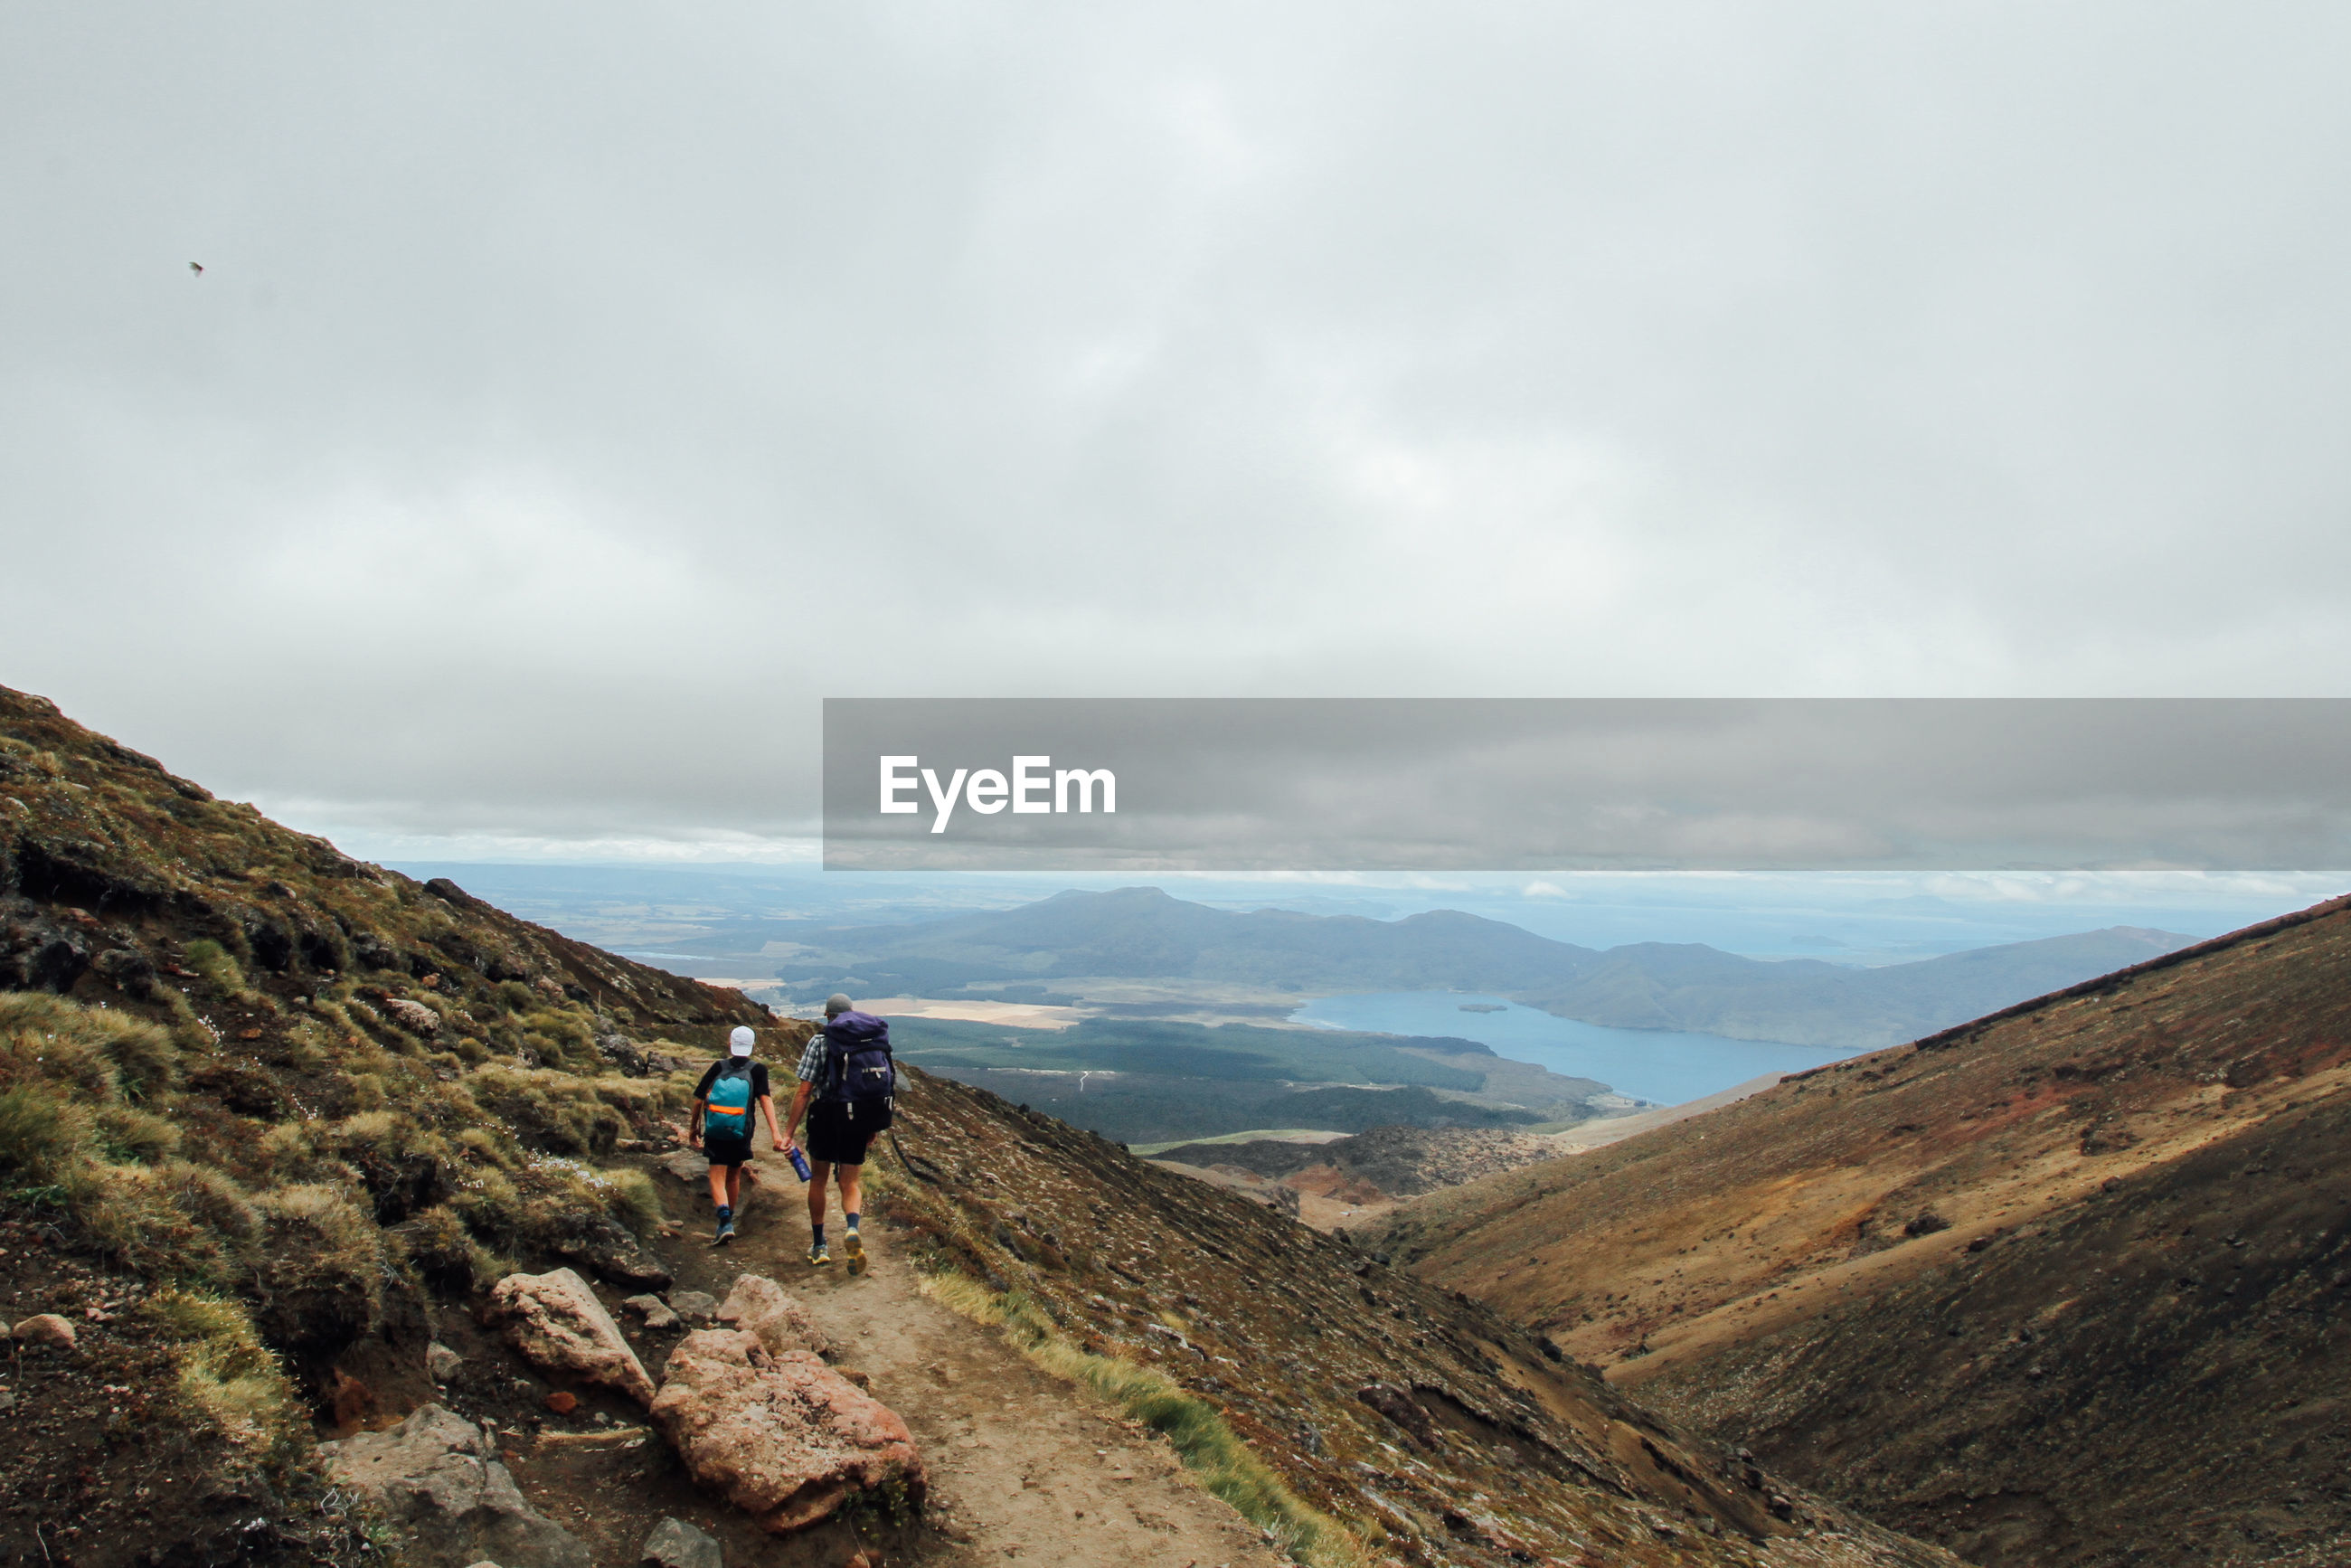 Rear view of man with son hiking on mountain against cloudy sky